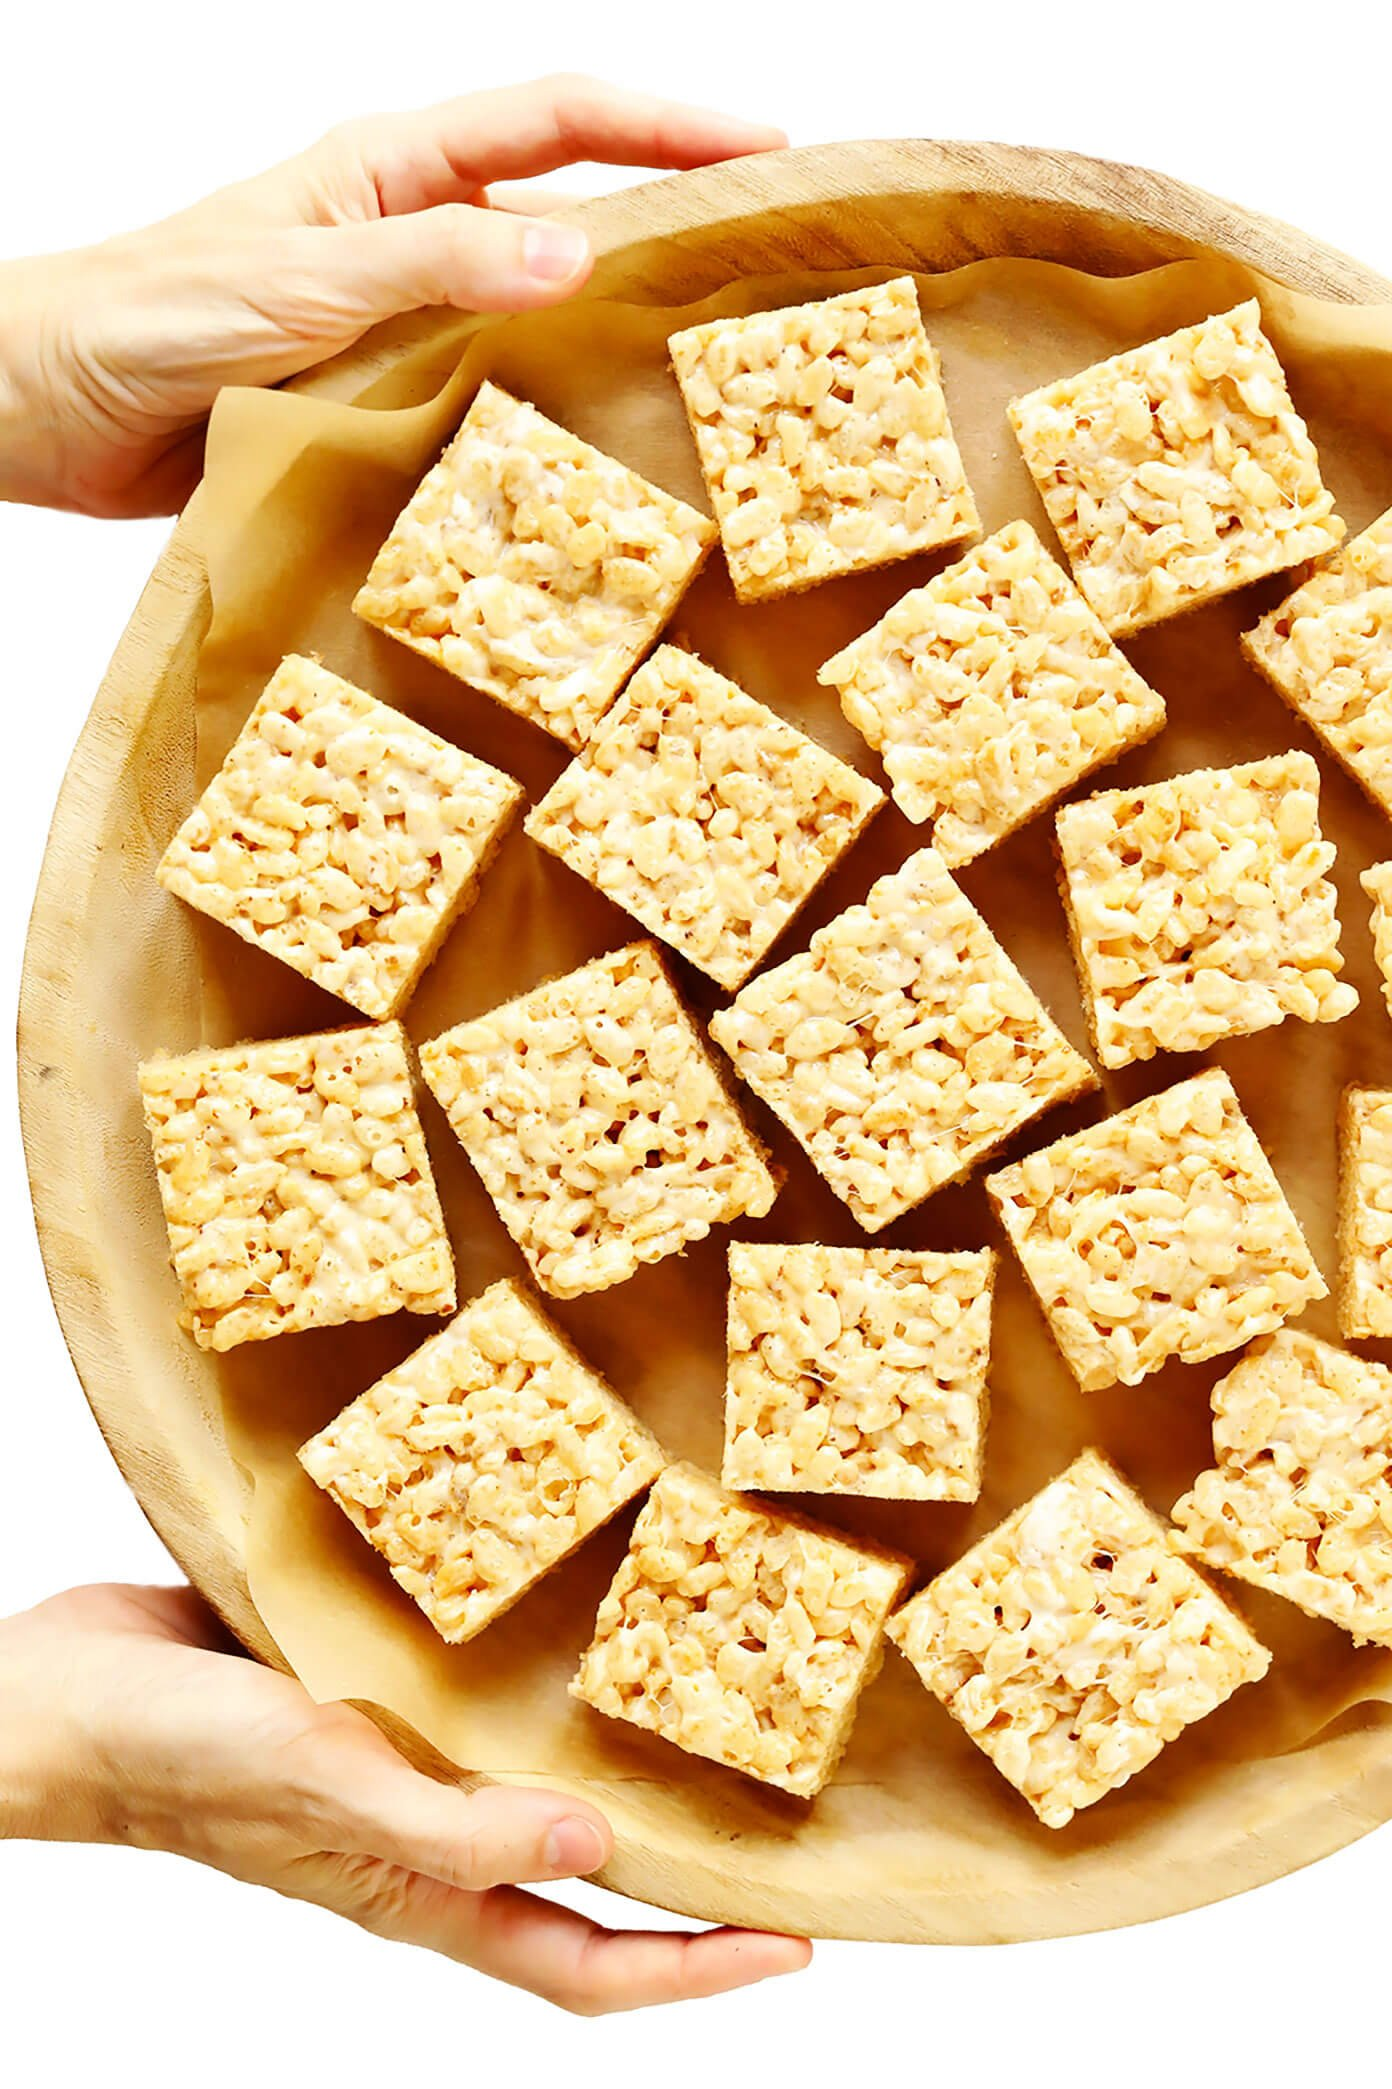 Tray of Rice Krispie Treat Squares